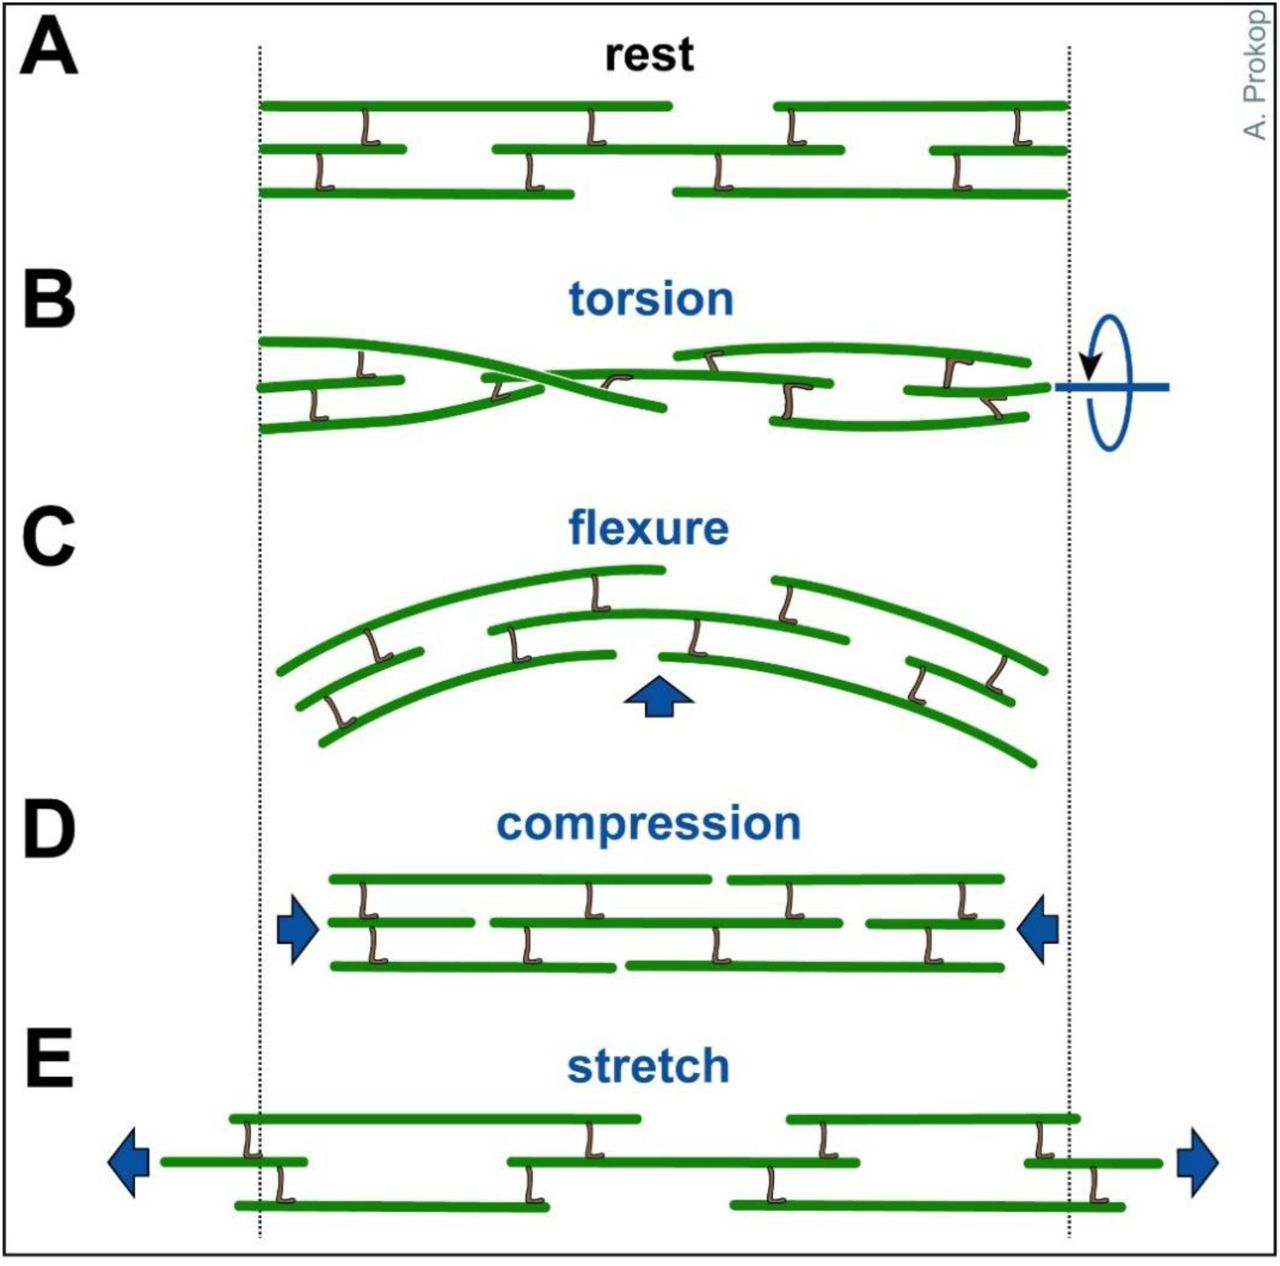 The model of local axon homeostasis - explaining the role